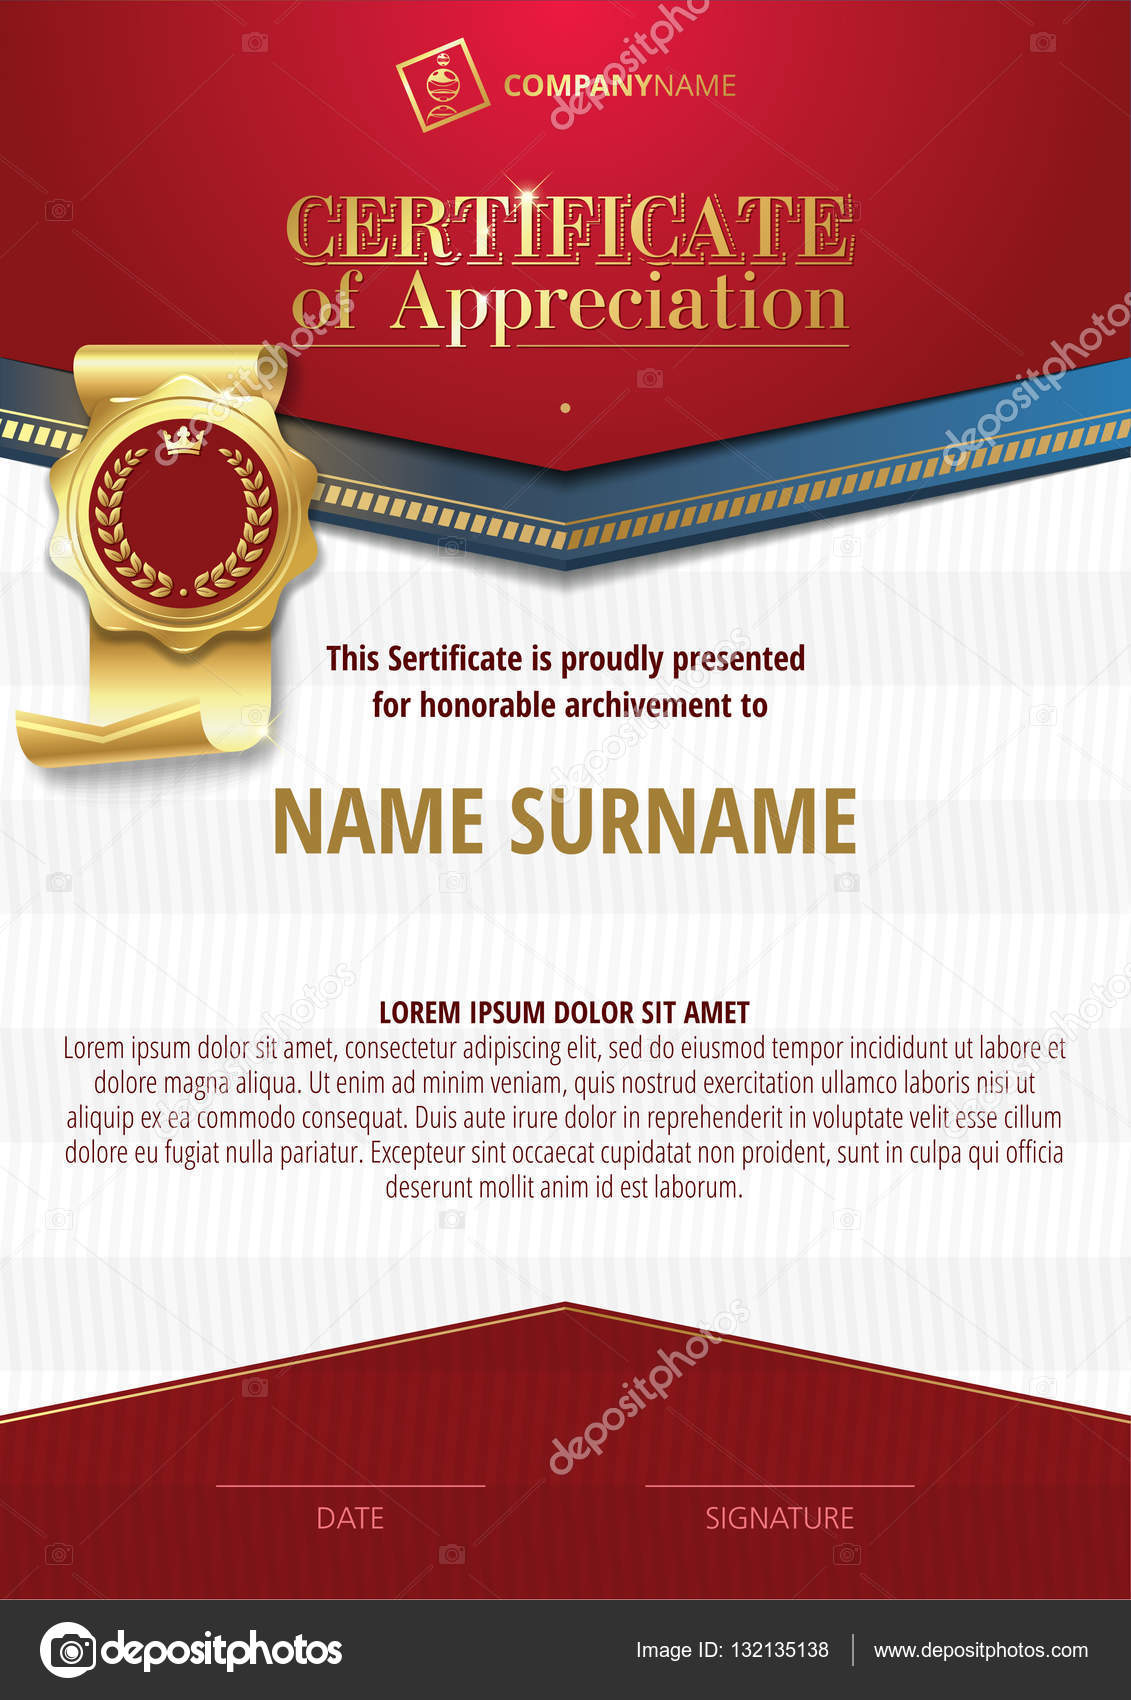 Template of certificate of appreciation with golden badge and red template of certificate of appreciation with golden badge and red elements stock photo yelopaper Choice Image